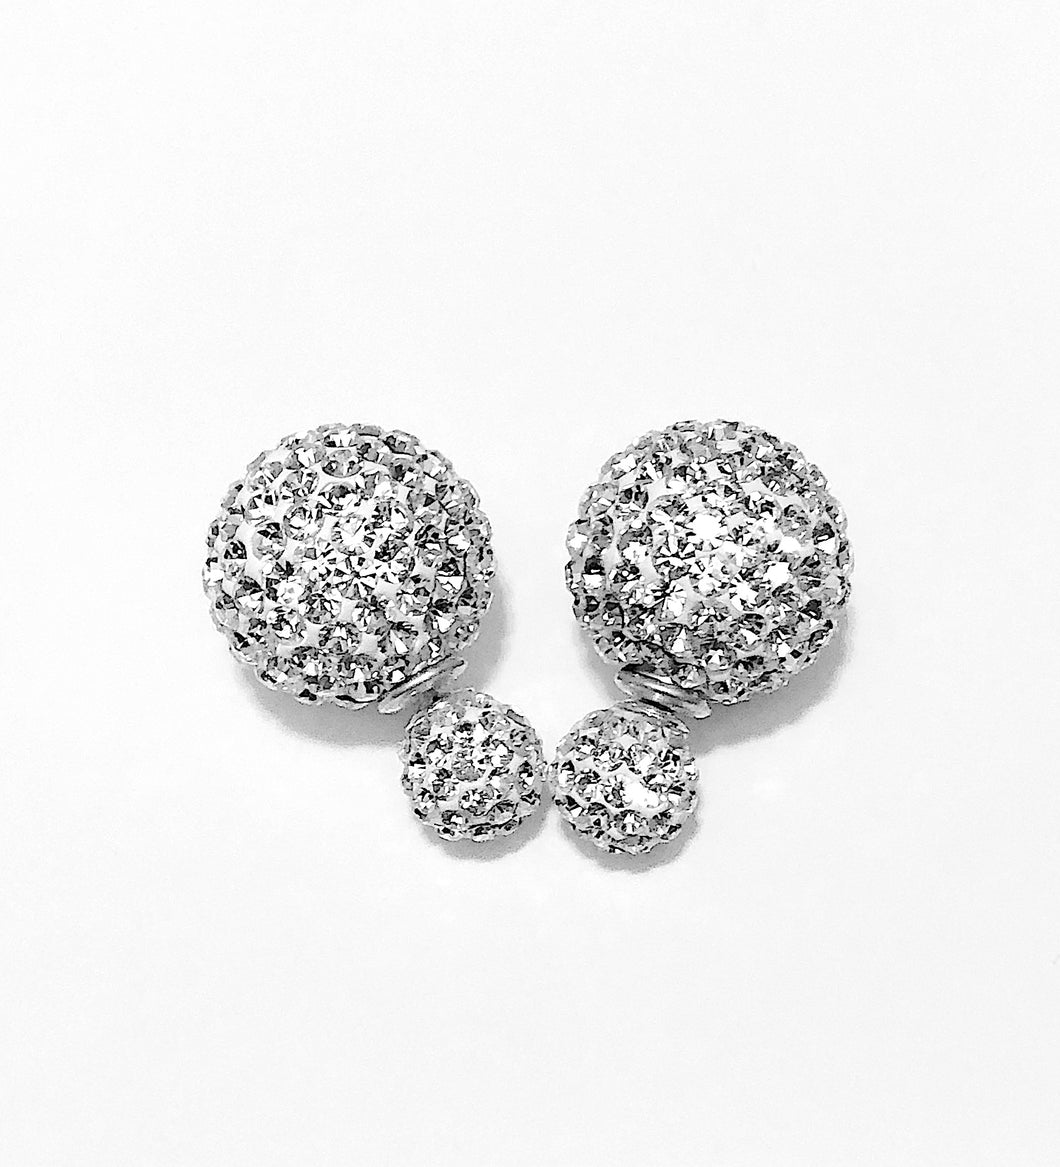 Sterling Silver Fireball Front-Back Design Earrings.